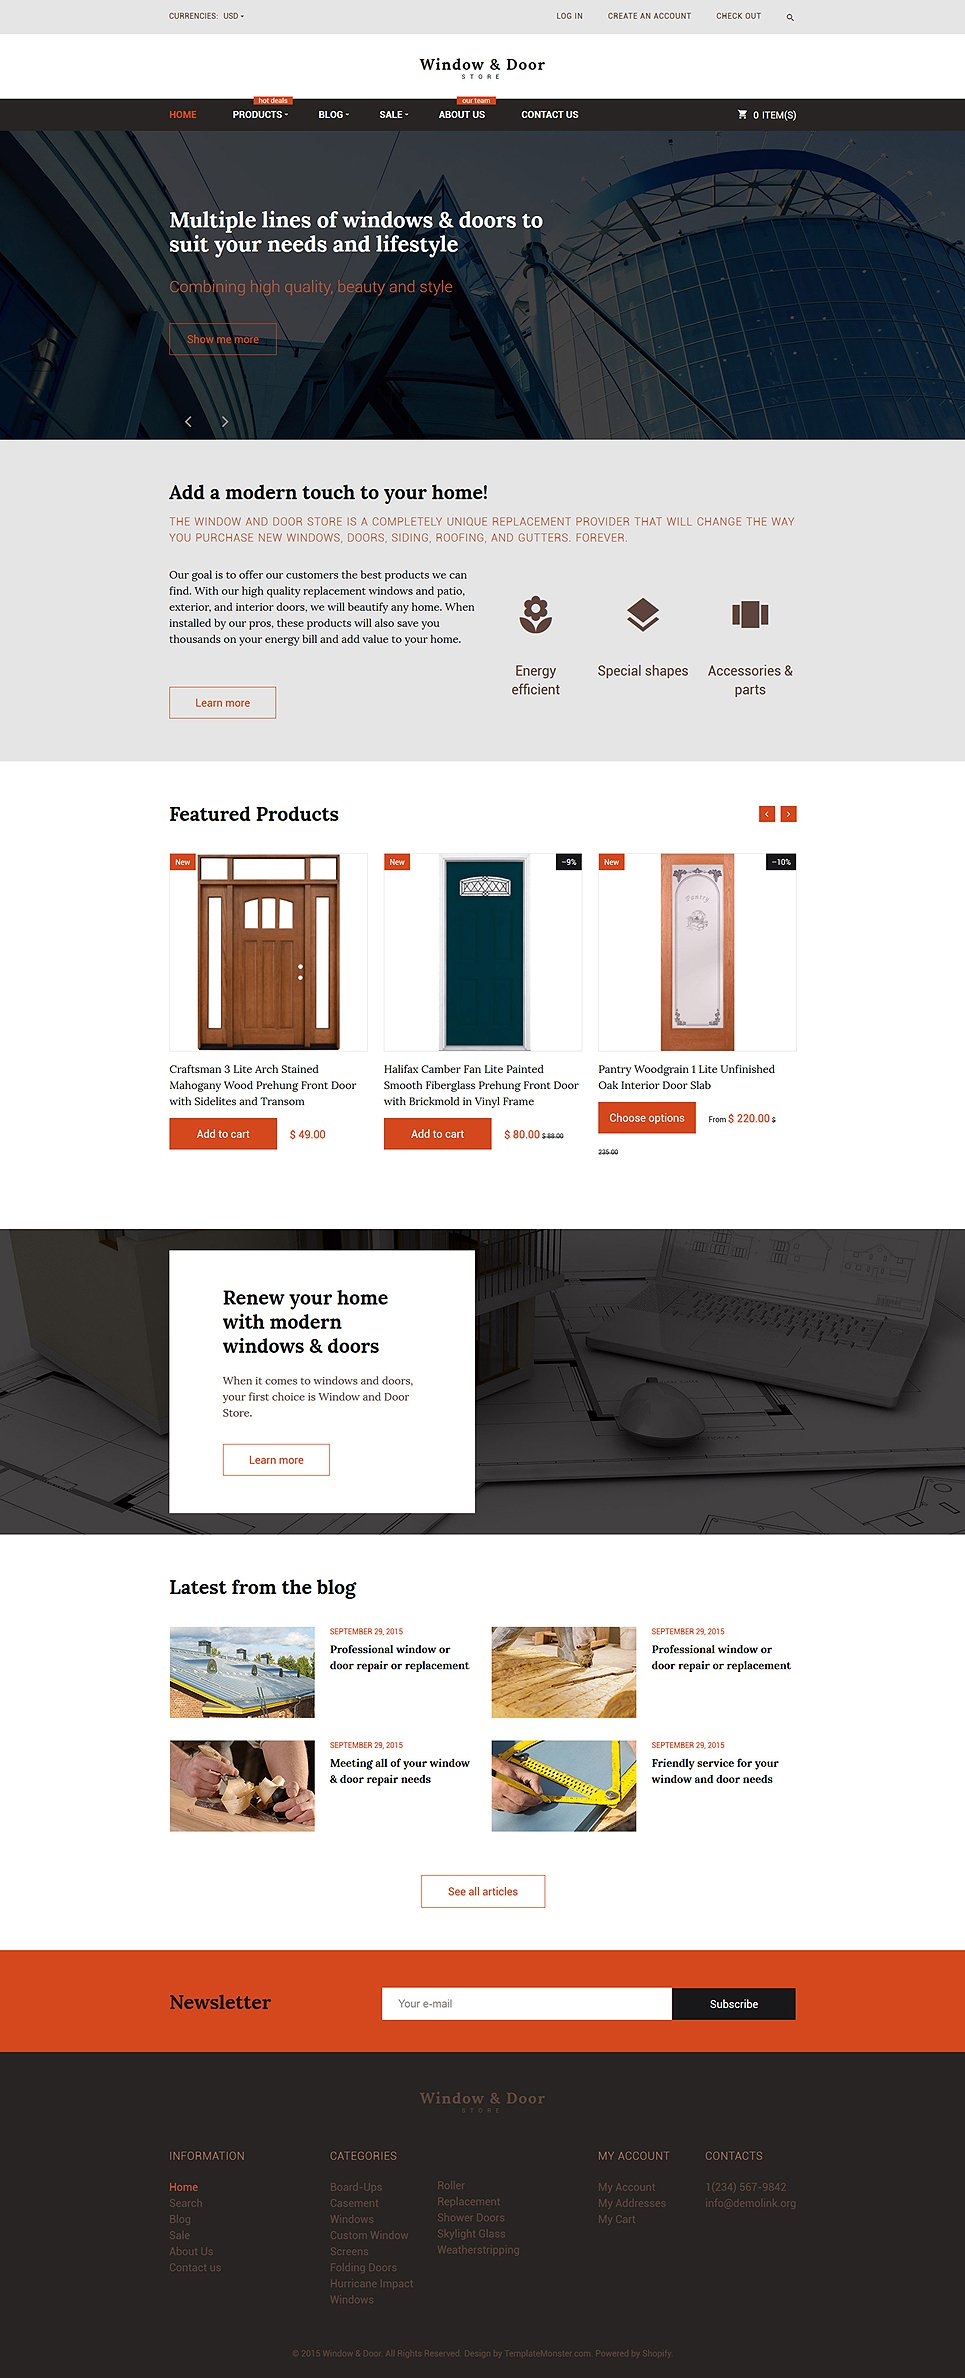 Home Improvement Contractor Shopify Theme - Shopify website templates